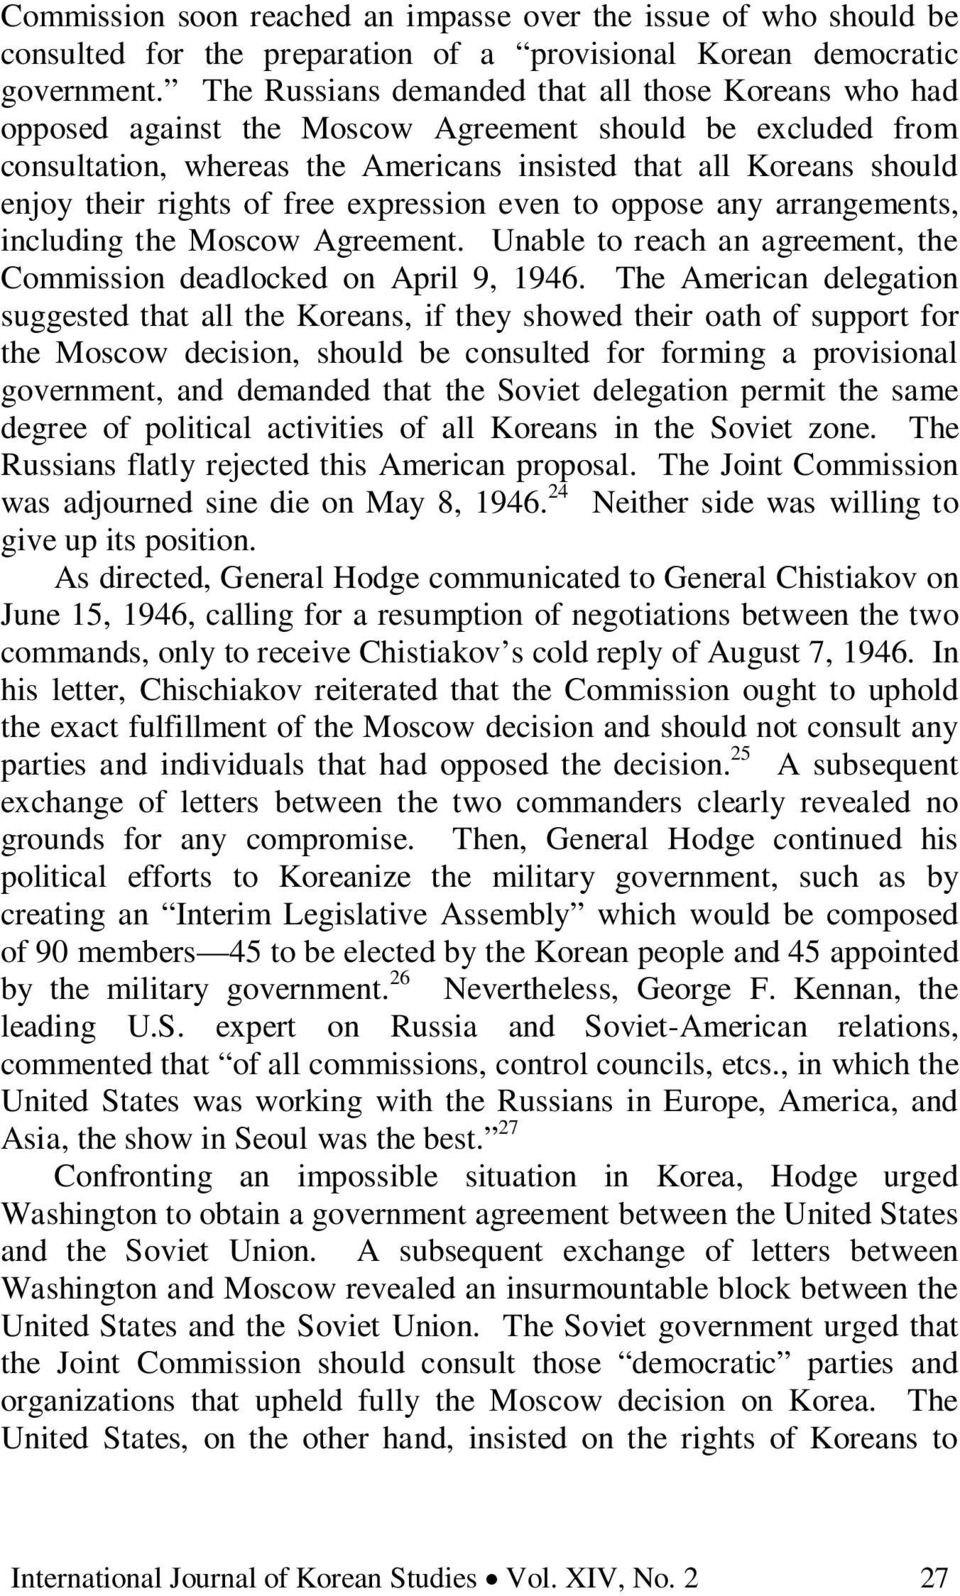 rights of free expression even to oppose any arrangements, including the Moscow Agreement. Unable to reach an agreement, the Commission deadlocked on April 9, 1946.